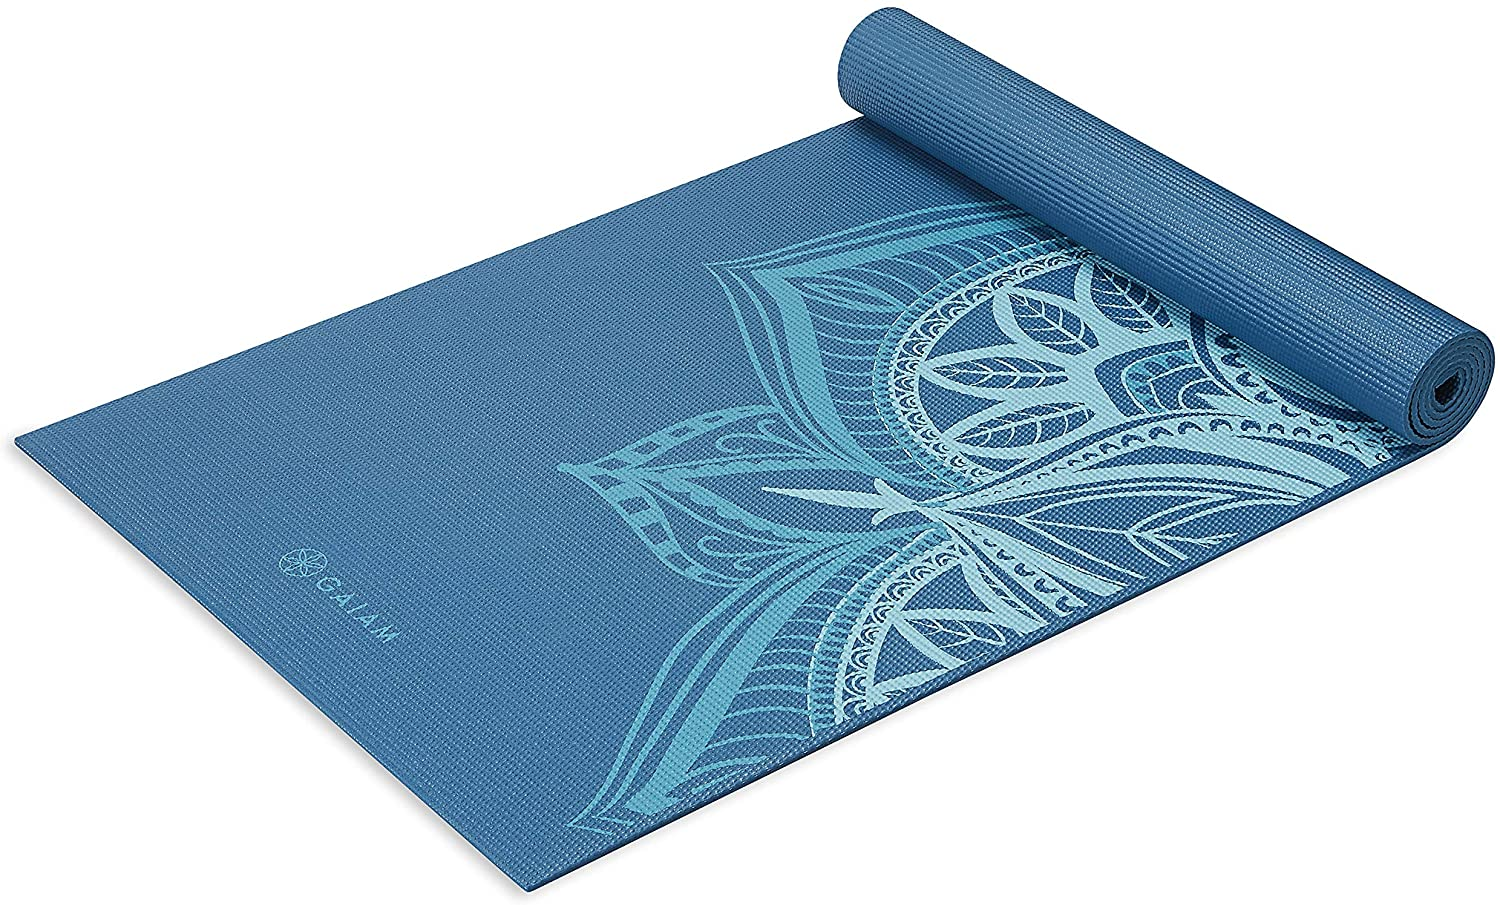 "Gaiam Yoga Mat - Premium 6mm Print Extra Thick Non Slip Exercise & Fitness Mat for All Types of Yoga, Pilates & Floor Workouts (68"" x 24"" x 6mm)"